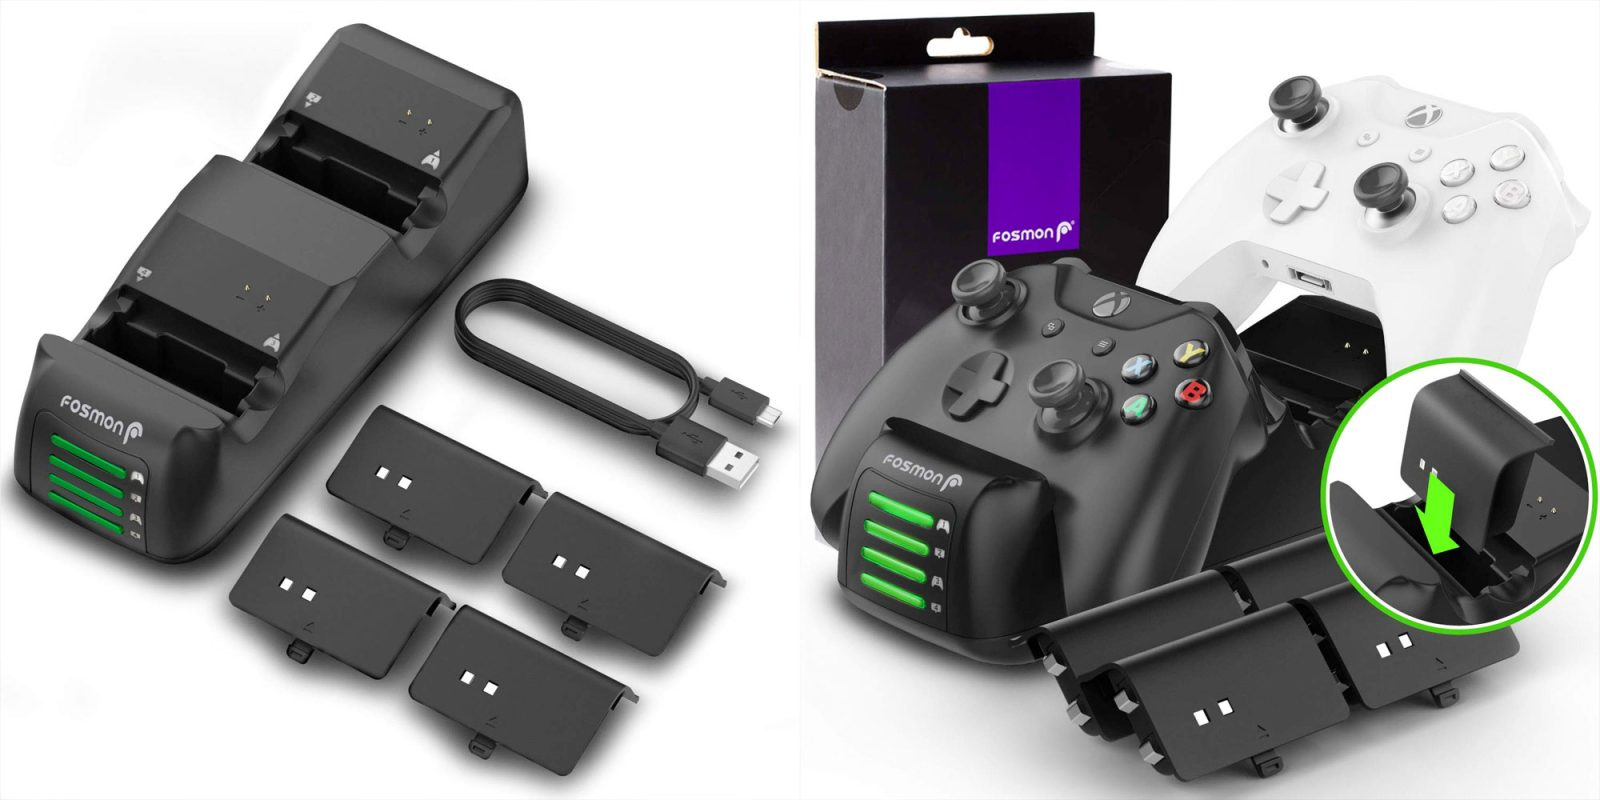 quality design f371e 10239 Keep up to four Xbox One controllers ready to go w  Fosmon s new Quad Pro  Charging Station